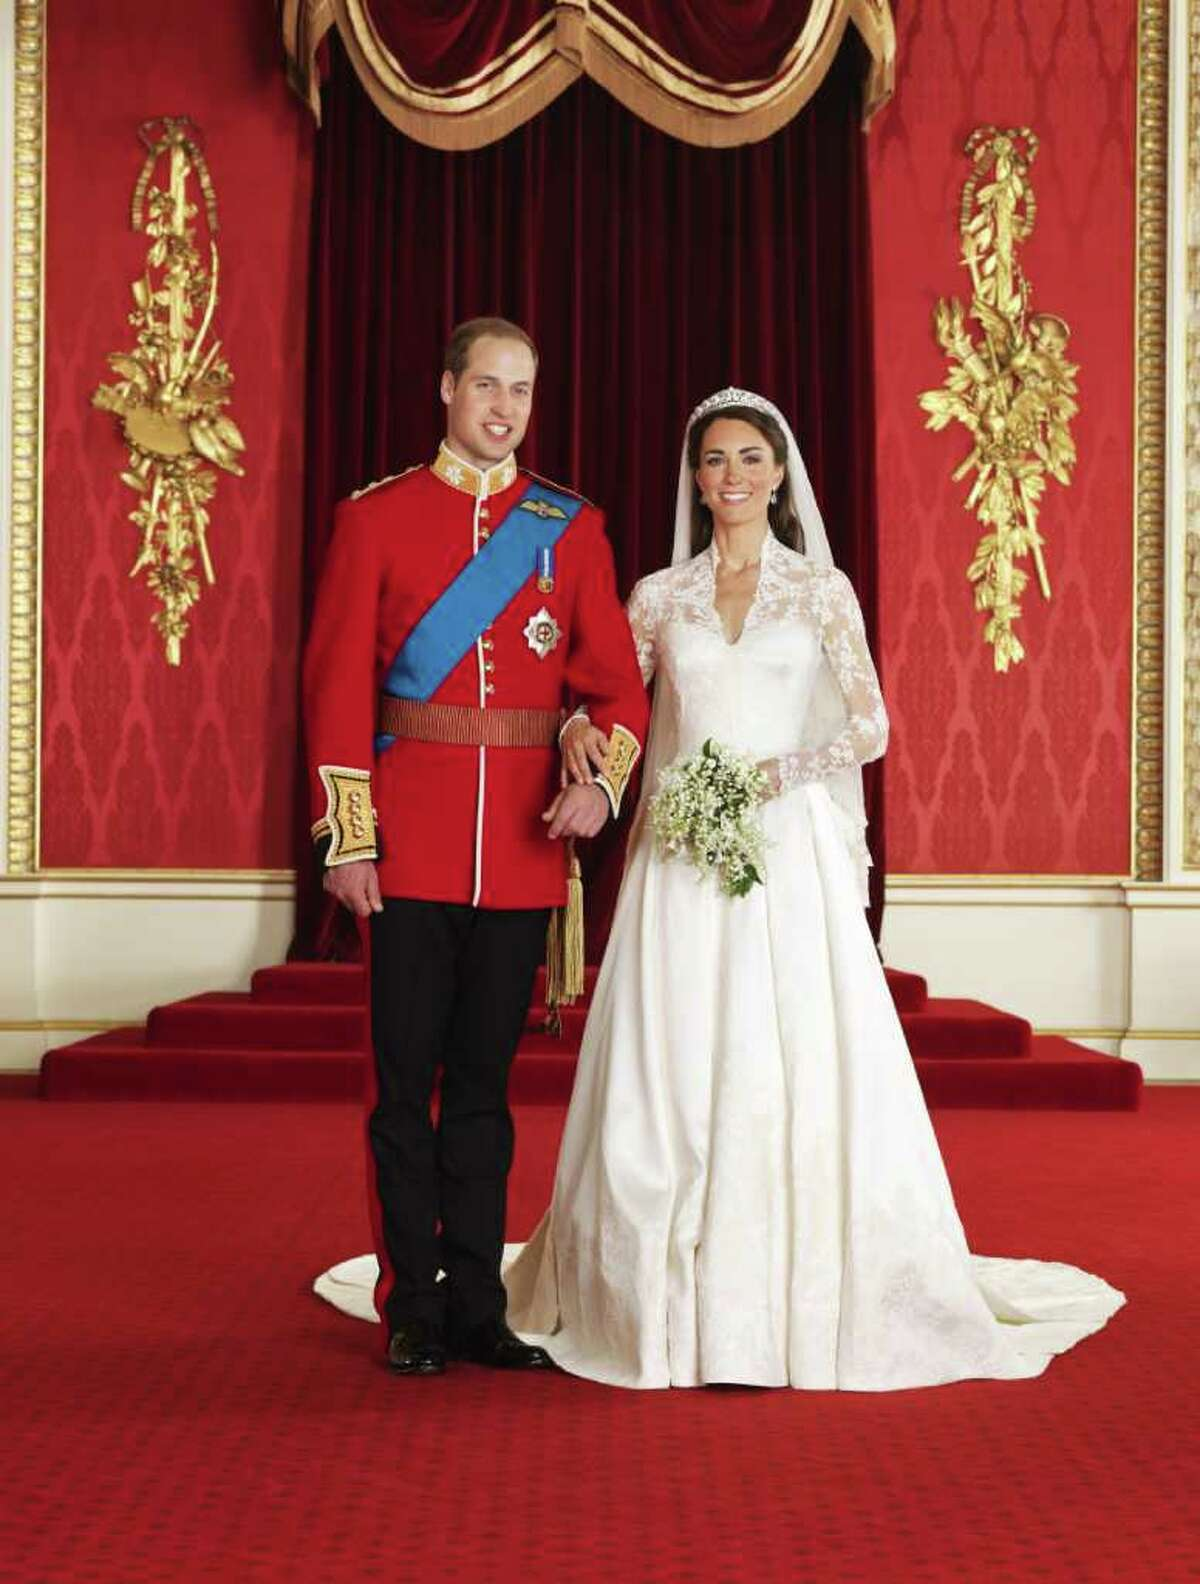 In this photo provided by Clarence House on Saturday April 30 2011, Britain's Prince William, left, and his wife Kate, Duchess of Cambridge, pose for a photograph in the throne room at Buckingham Palace, following their wedding at Westminster Abbey, London, on Friday, April 29. (AP Photo/Hugo Burnand, Clarence House) NO SALES